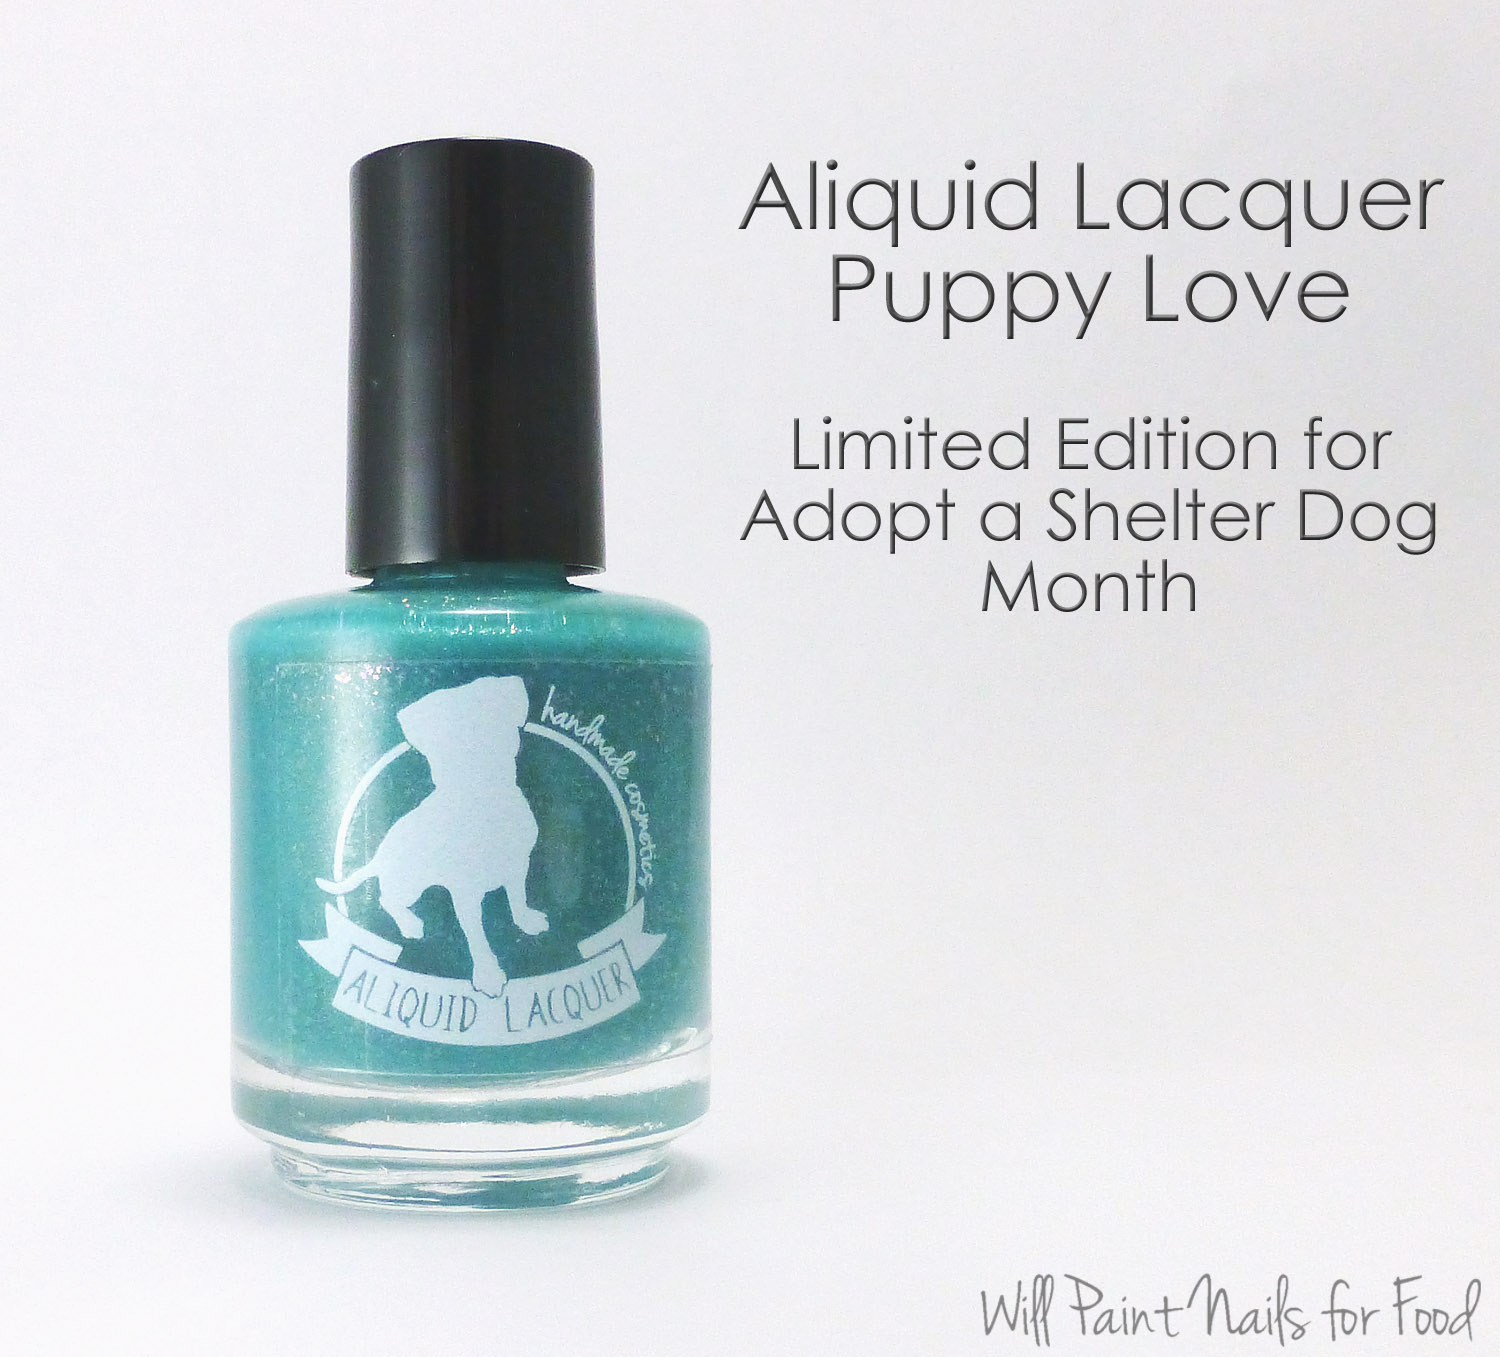 Aliquid Lacquer Puppy Love